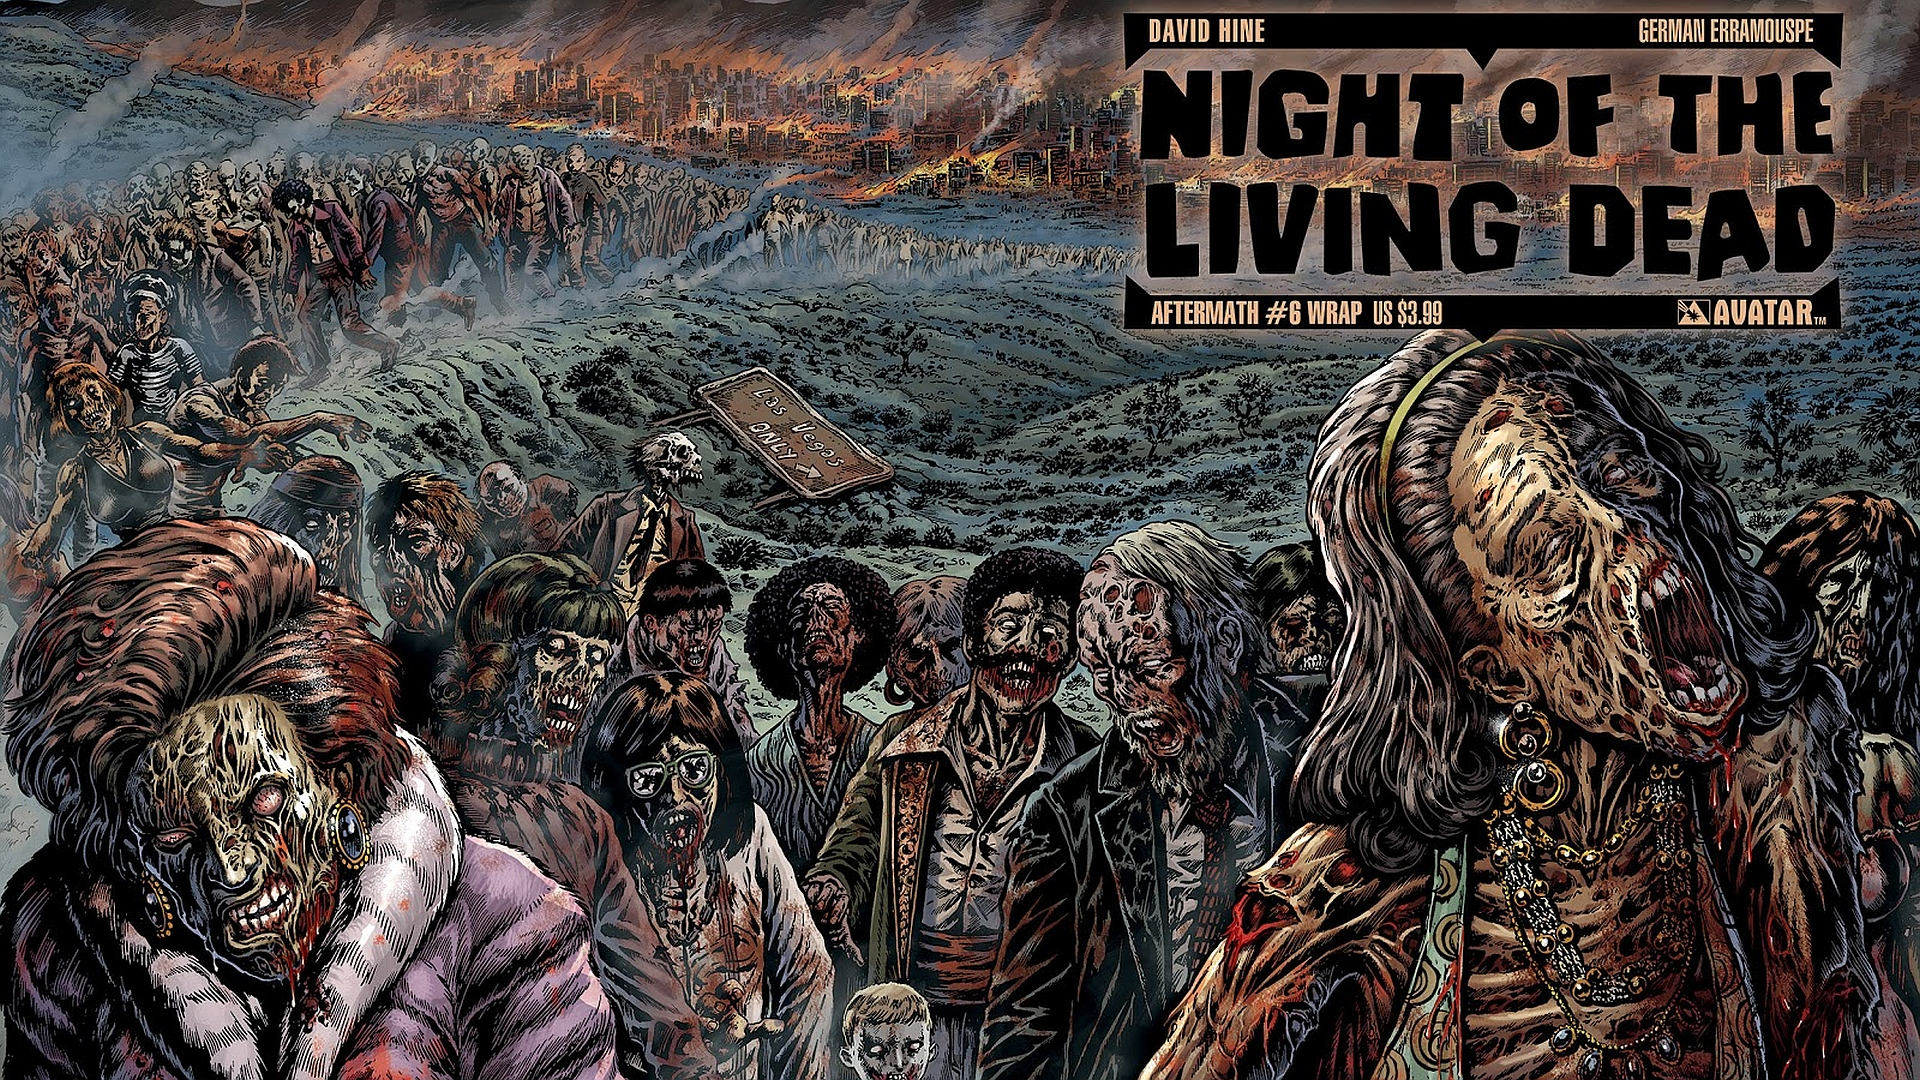 the night of the living dead George romero, whose classic night of the living dead and other horror films  turned zombie movies into social commentaries and who saw.